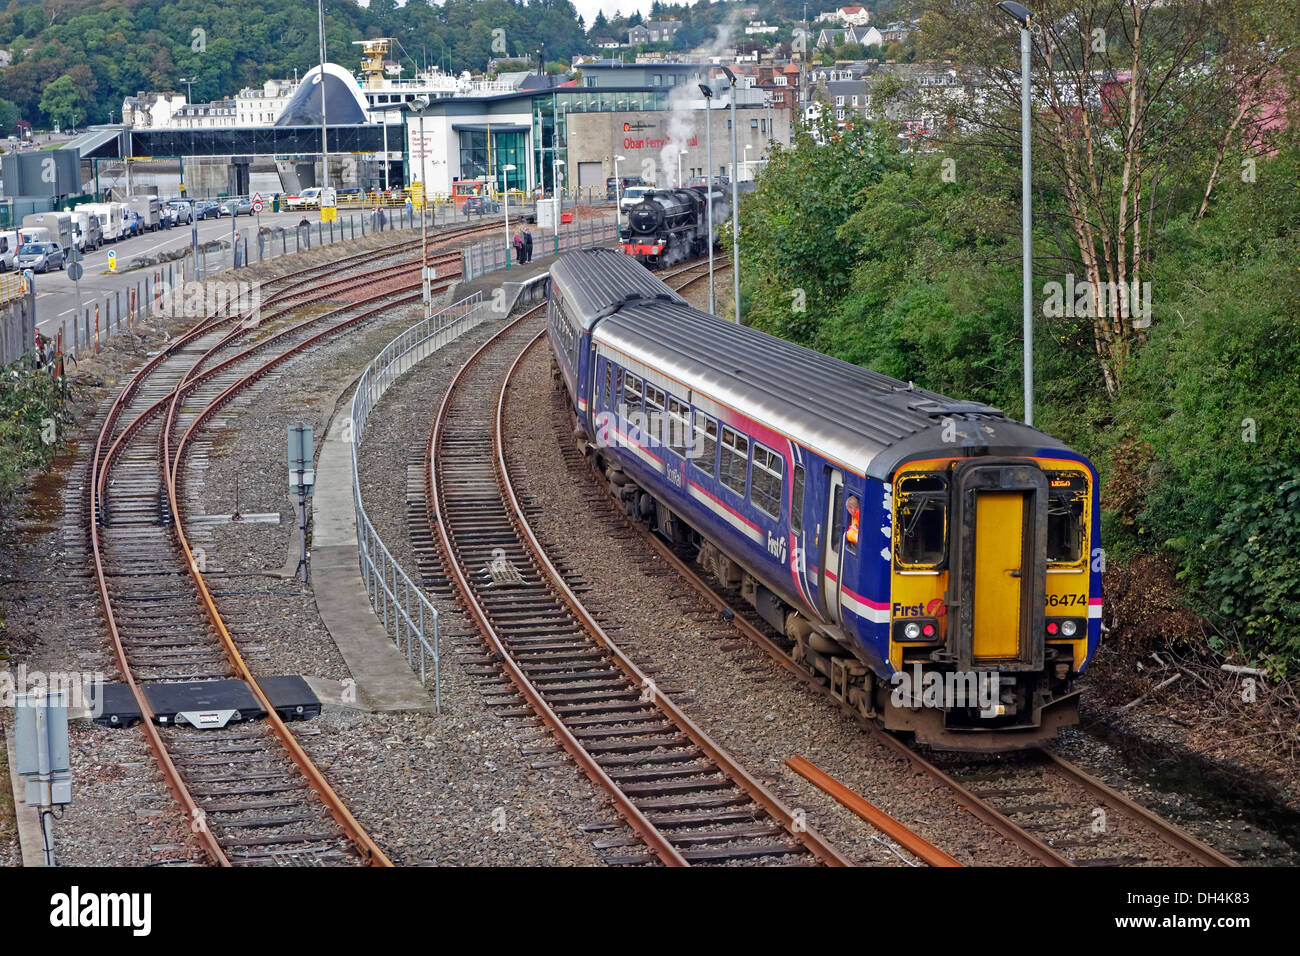 First Scotrail Class 156 DMU arrives at Railway Station in Oban Scotland & steam engine ready to depart with excursion train - Stock Image